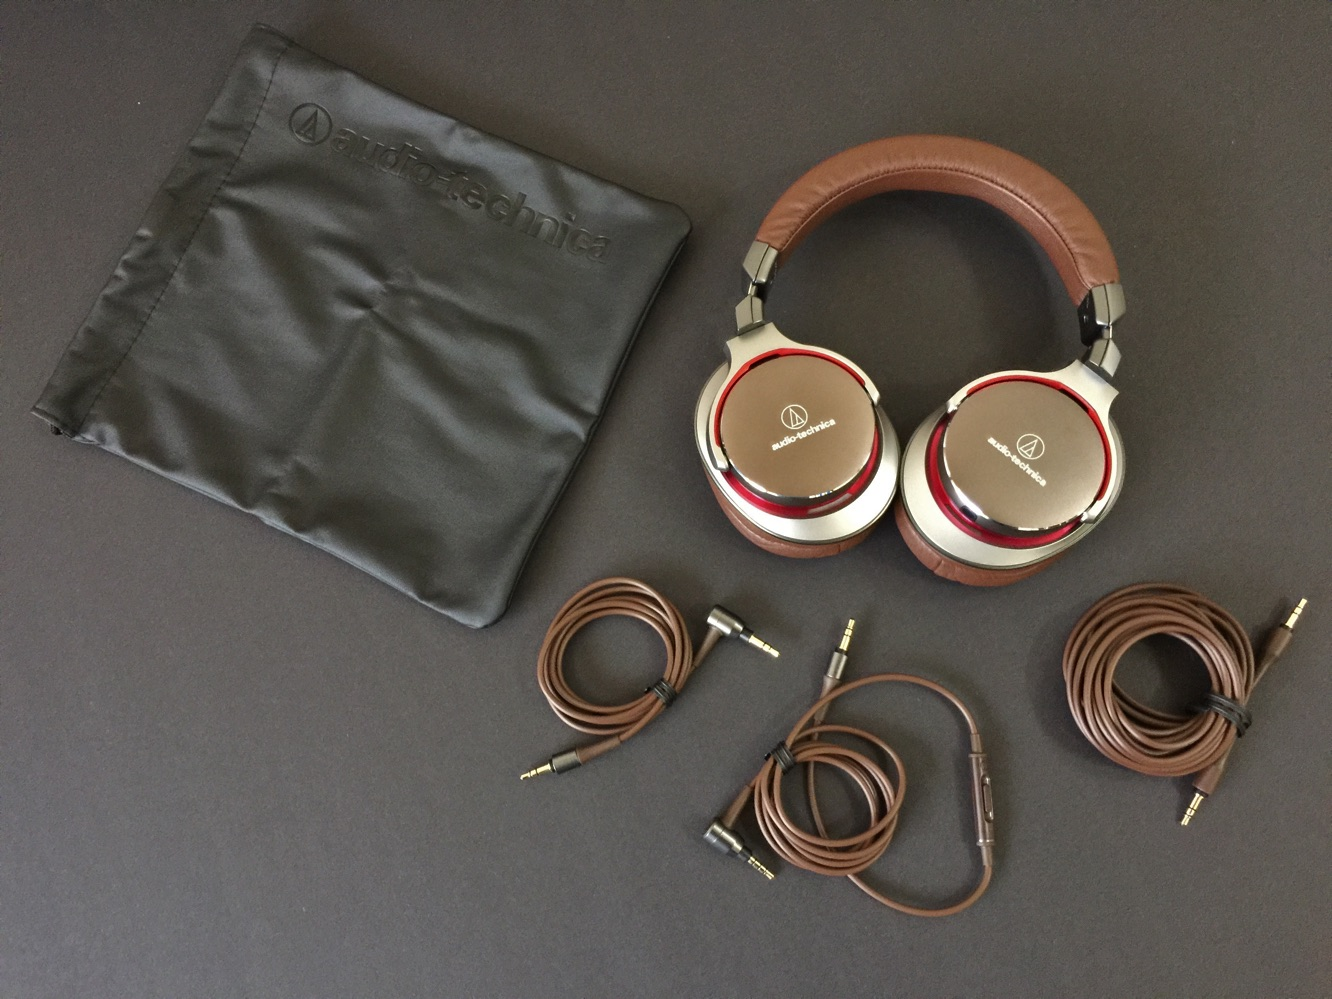 Review: Audio-Technica ATH-MSR7 SonicPro Over-Ear Headphones 3